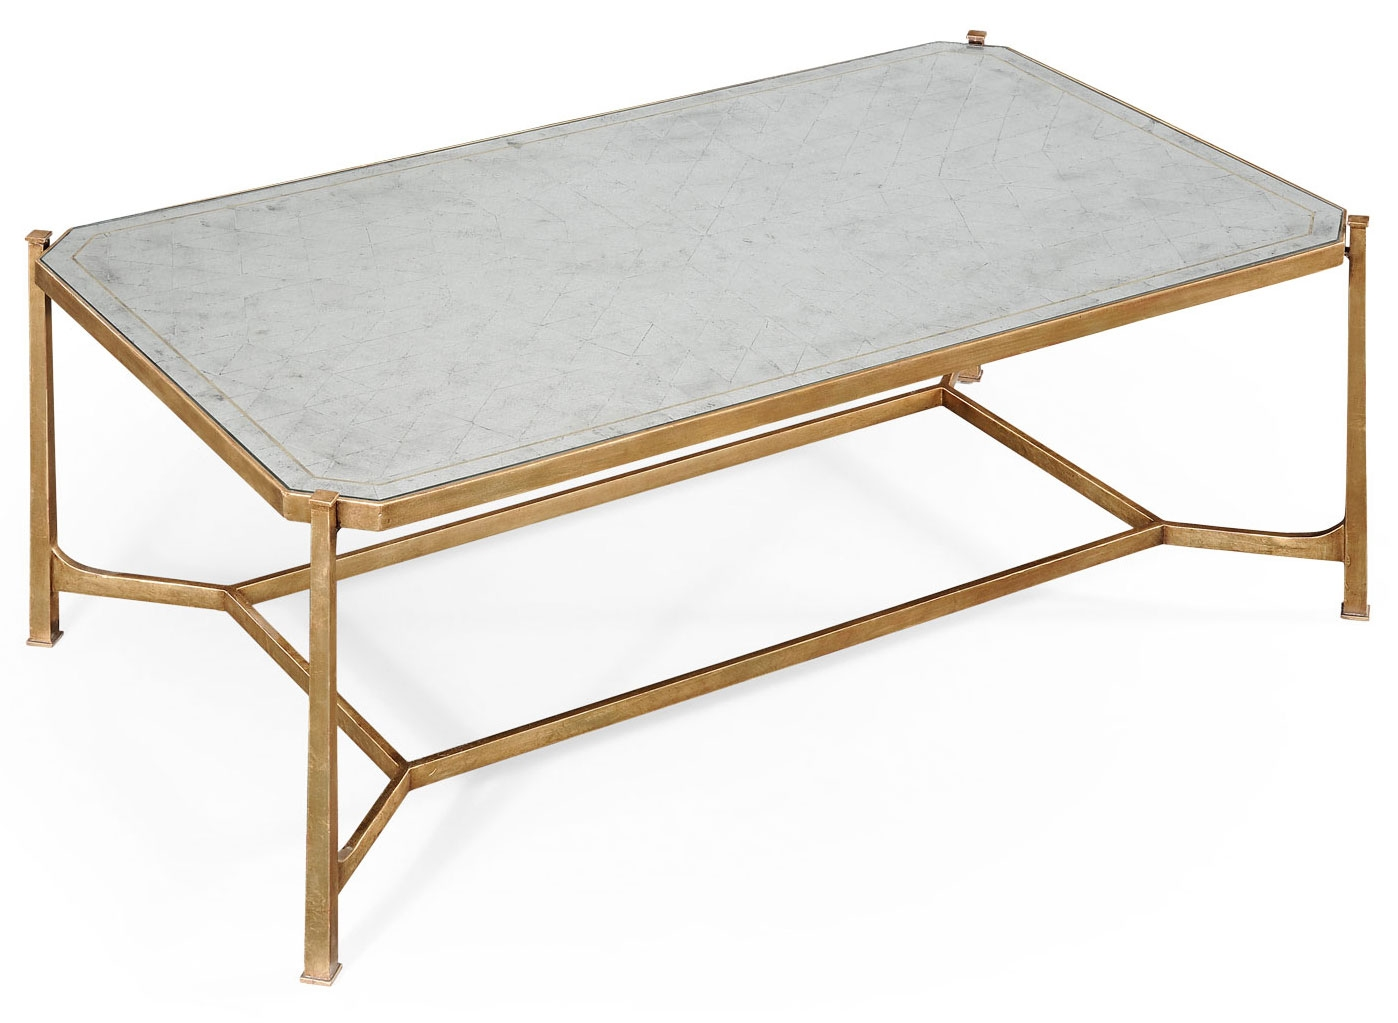 Contemporary rectangular glass top coffee table for Contemporary glass top coffee table